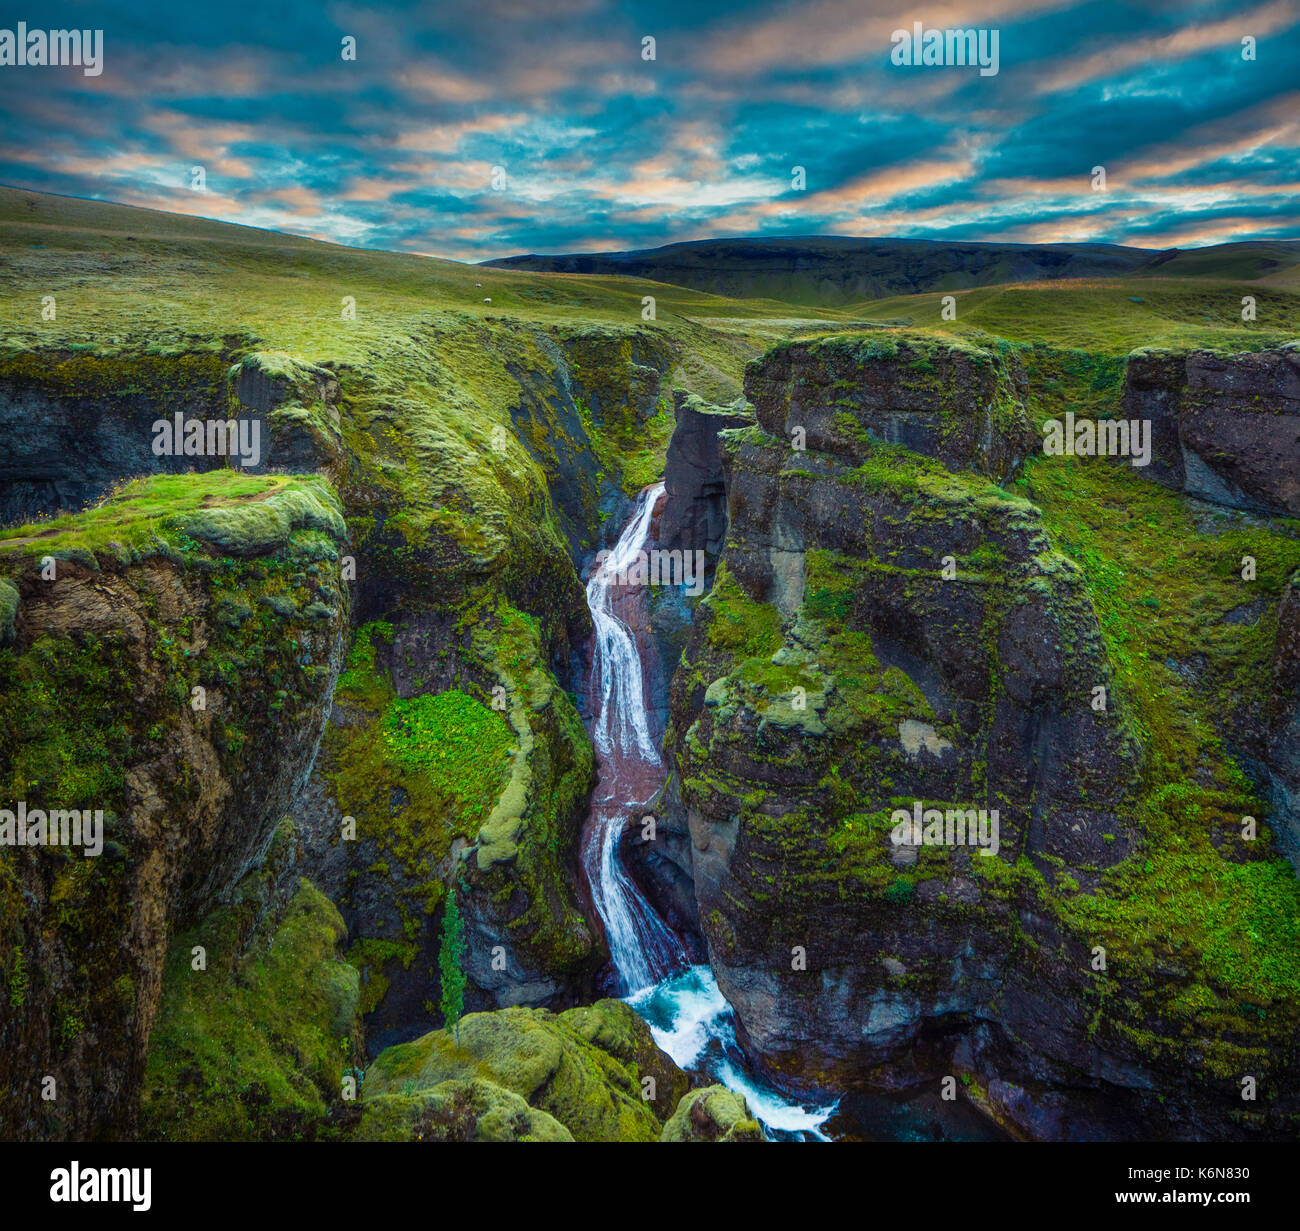 Fjaðrárgljúfur is a canyon in south east Iceland which is up to 100 m deep and about 2 kilometers - Stock Image